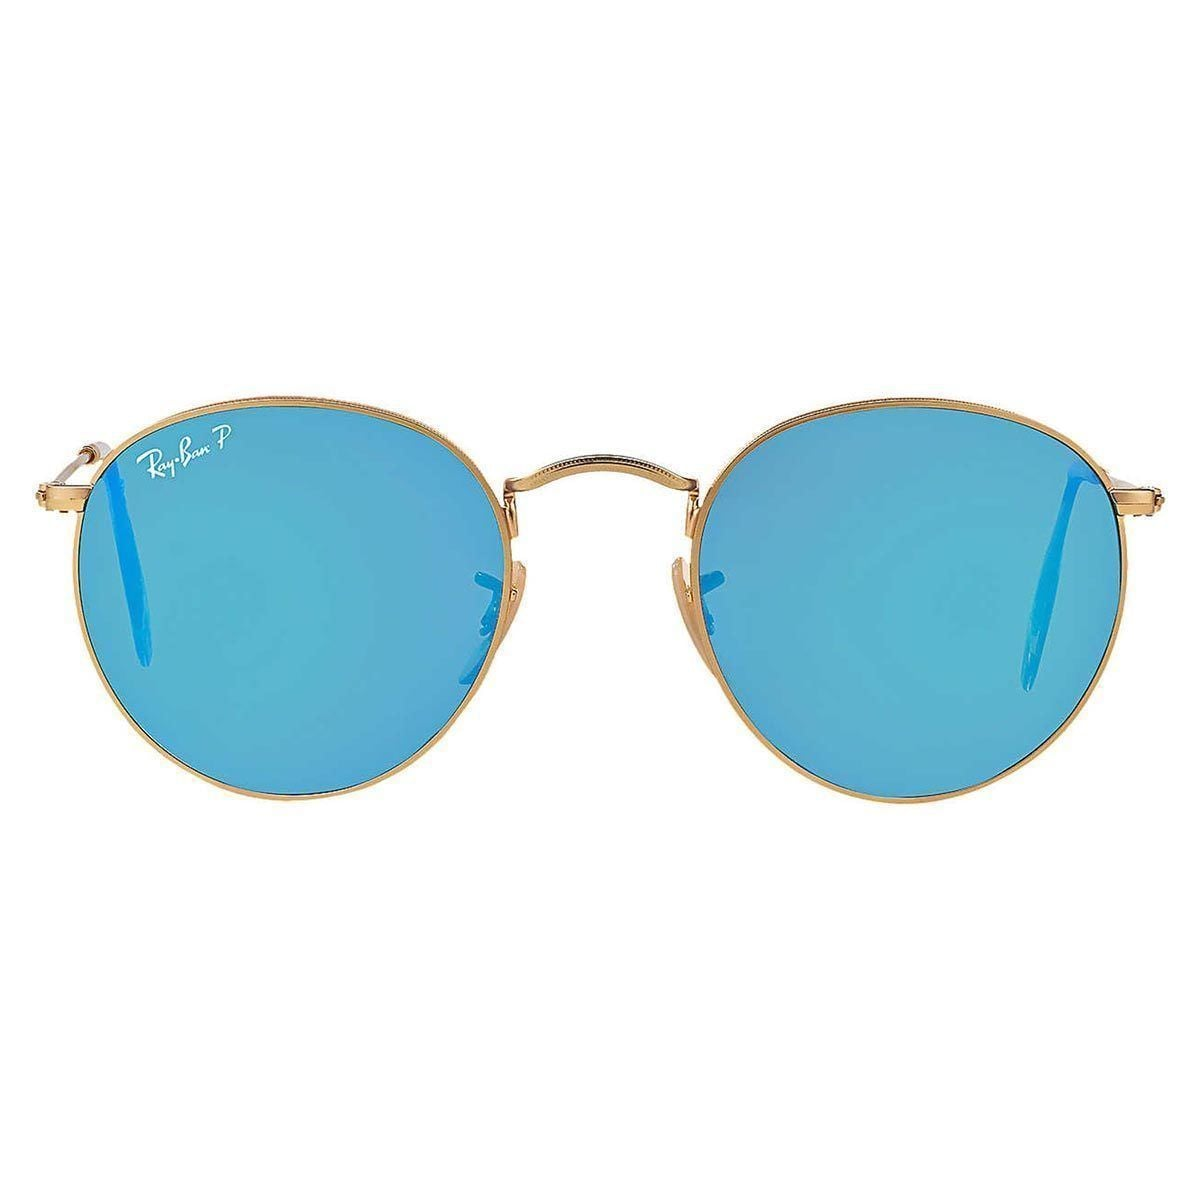 be53d96a71 Shop Ray-Ban Round Metal RB3447 112 4L Unisex Gold Frame Polarized Blue  Flash 50mm Lens Sunglasses - Free Shipping Today - Overstock - 15635228